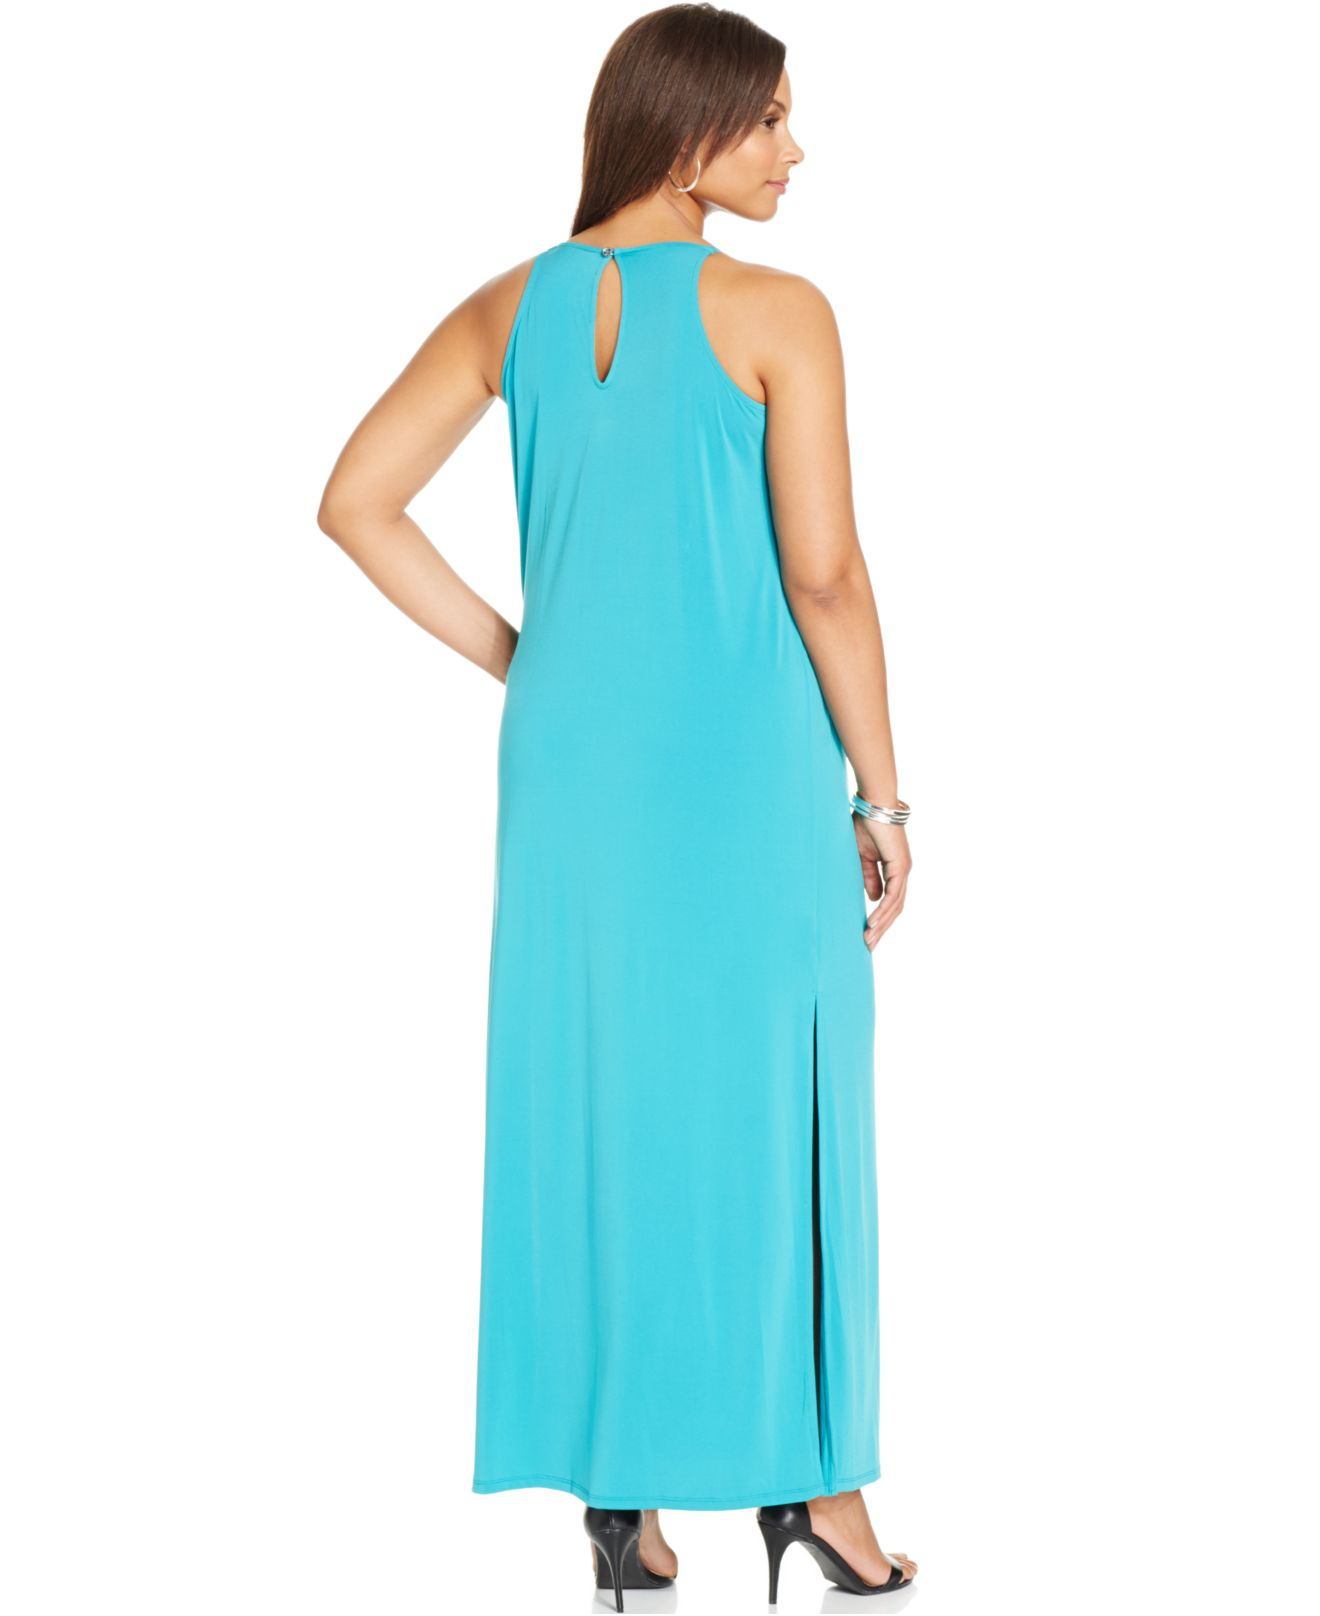 Lyst - Michael Kors Michael Plus Size Beaded Fringe Maxi Dress in Blue